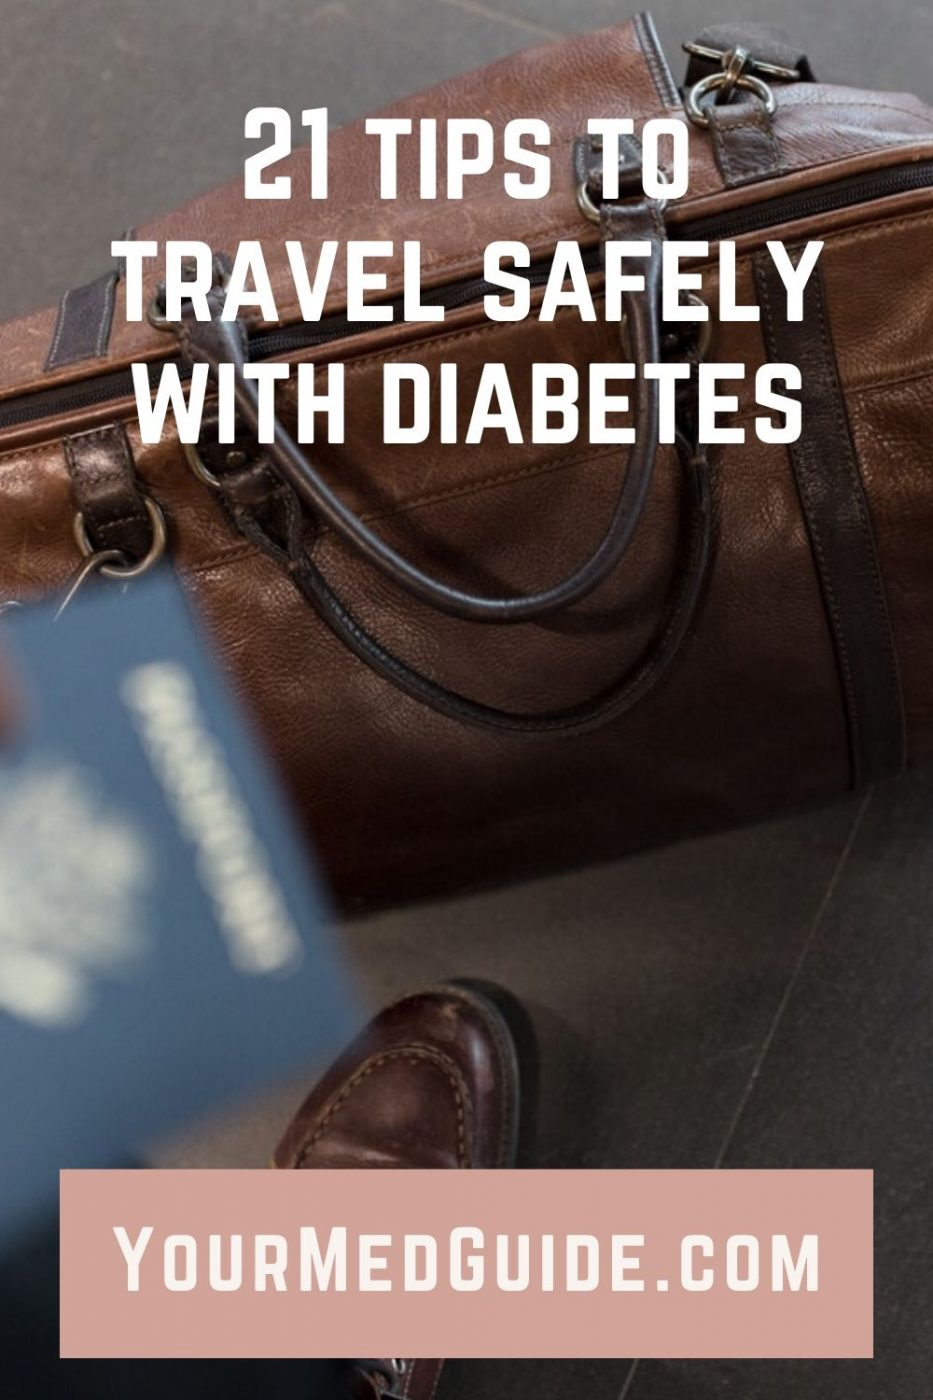 21 tips to travel with diabetes safely